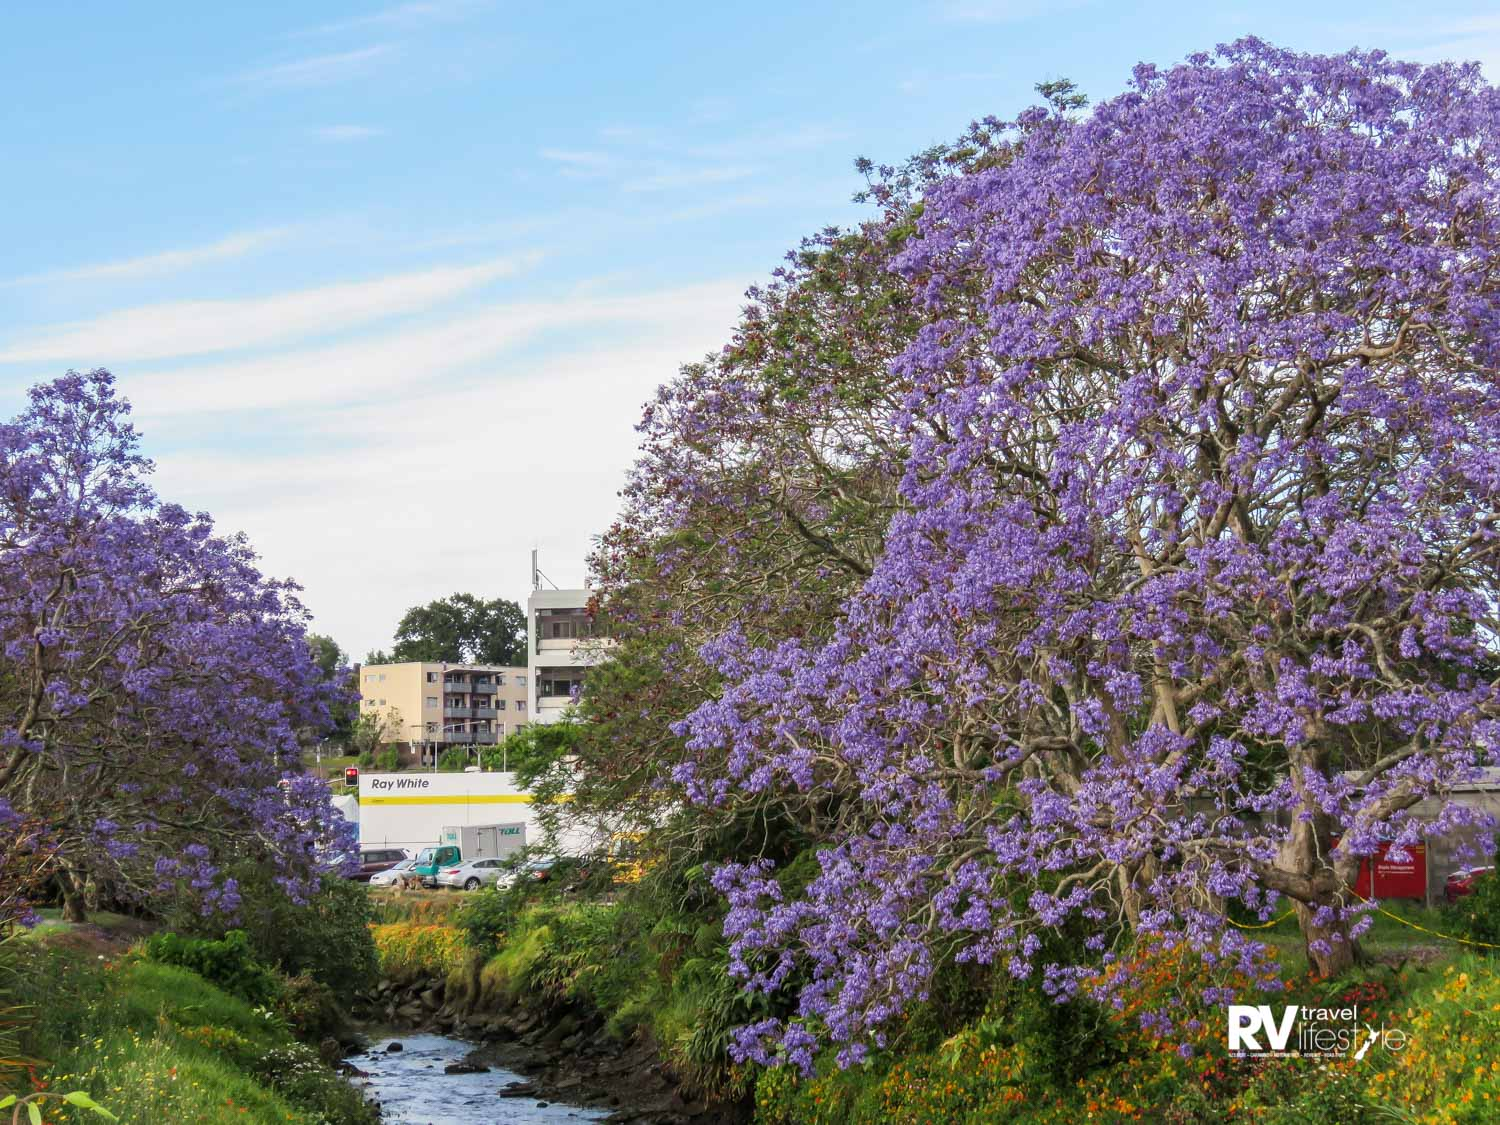 Jacaranda trees near the Waiarohia Stream in Whangarei – they make a very attractive sight throughout the city